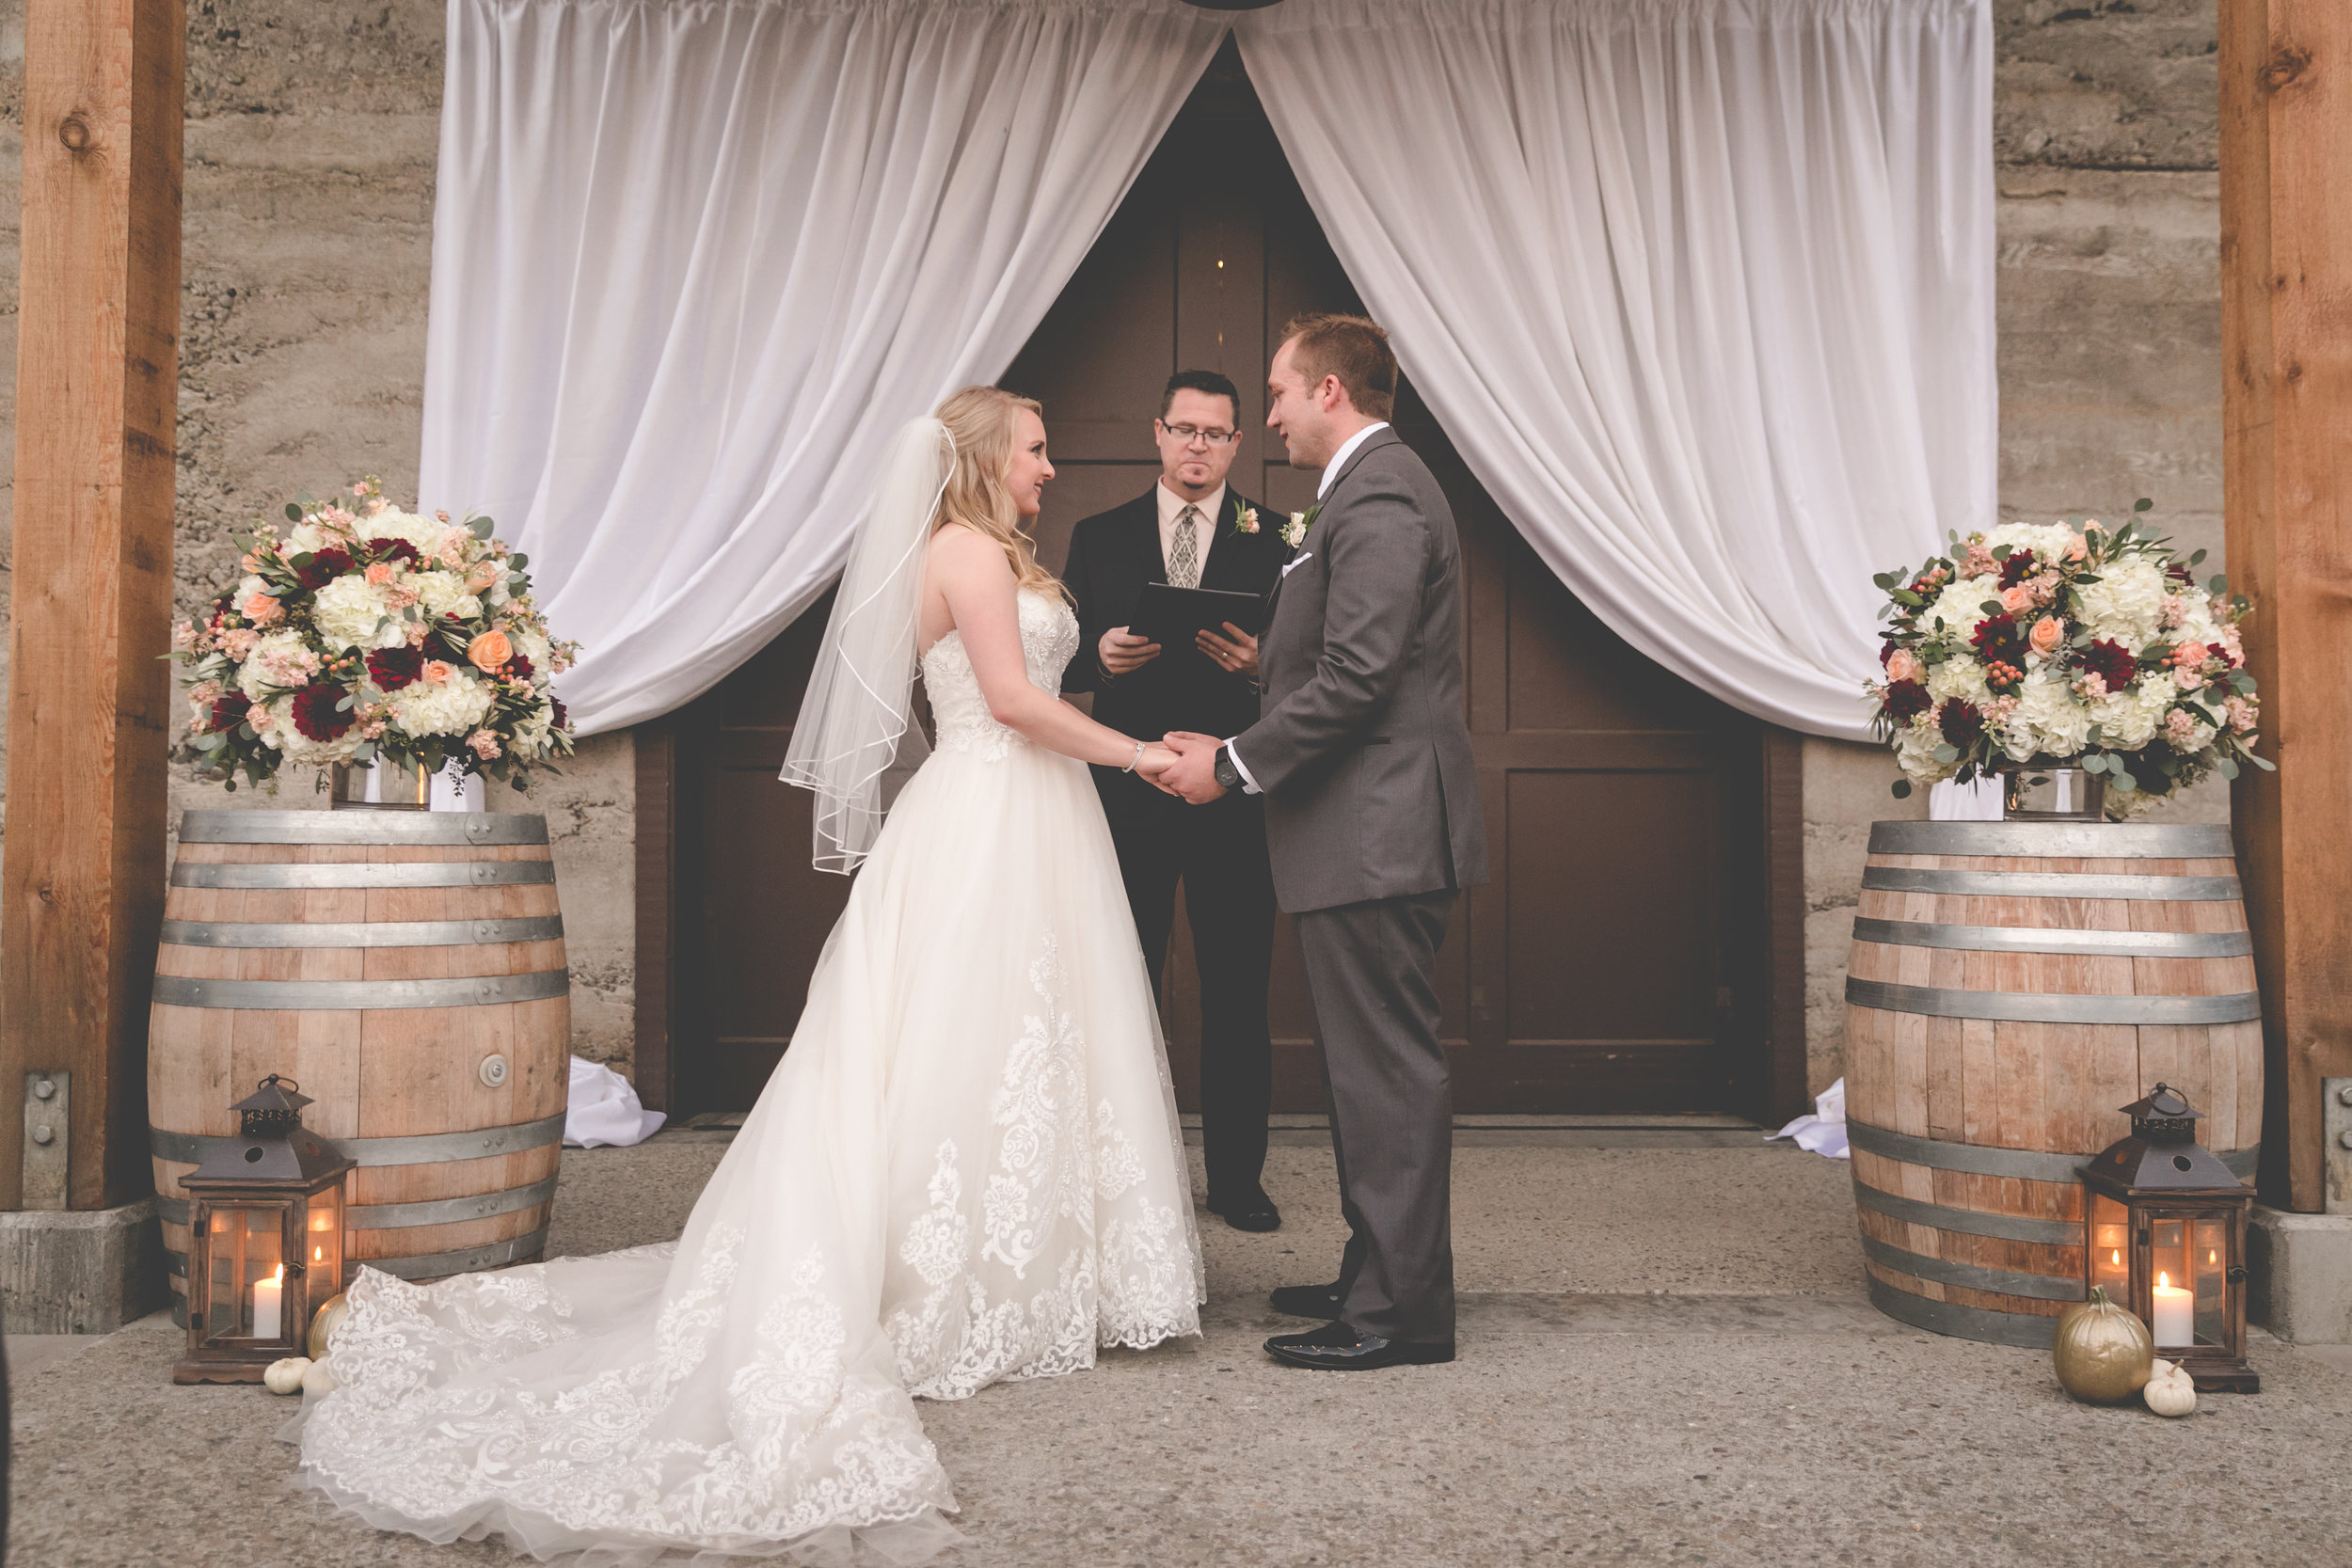 Petty [Ceremony]-42.jpg